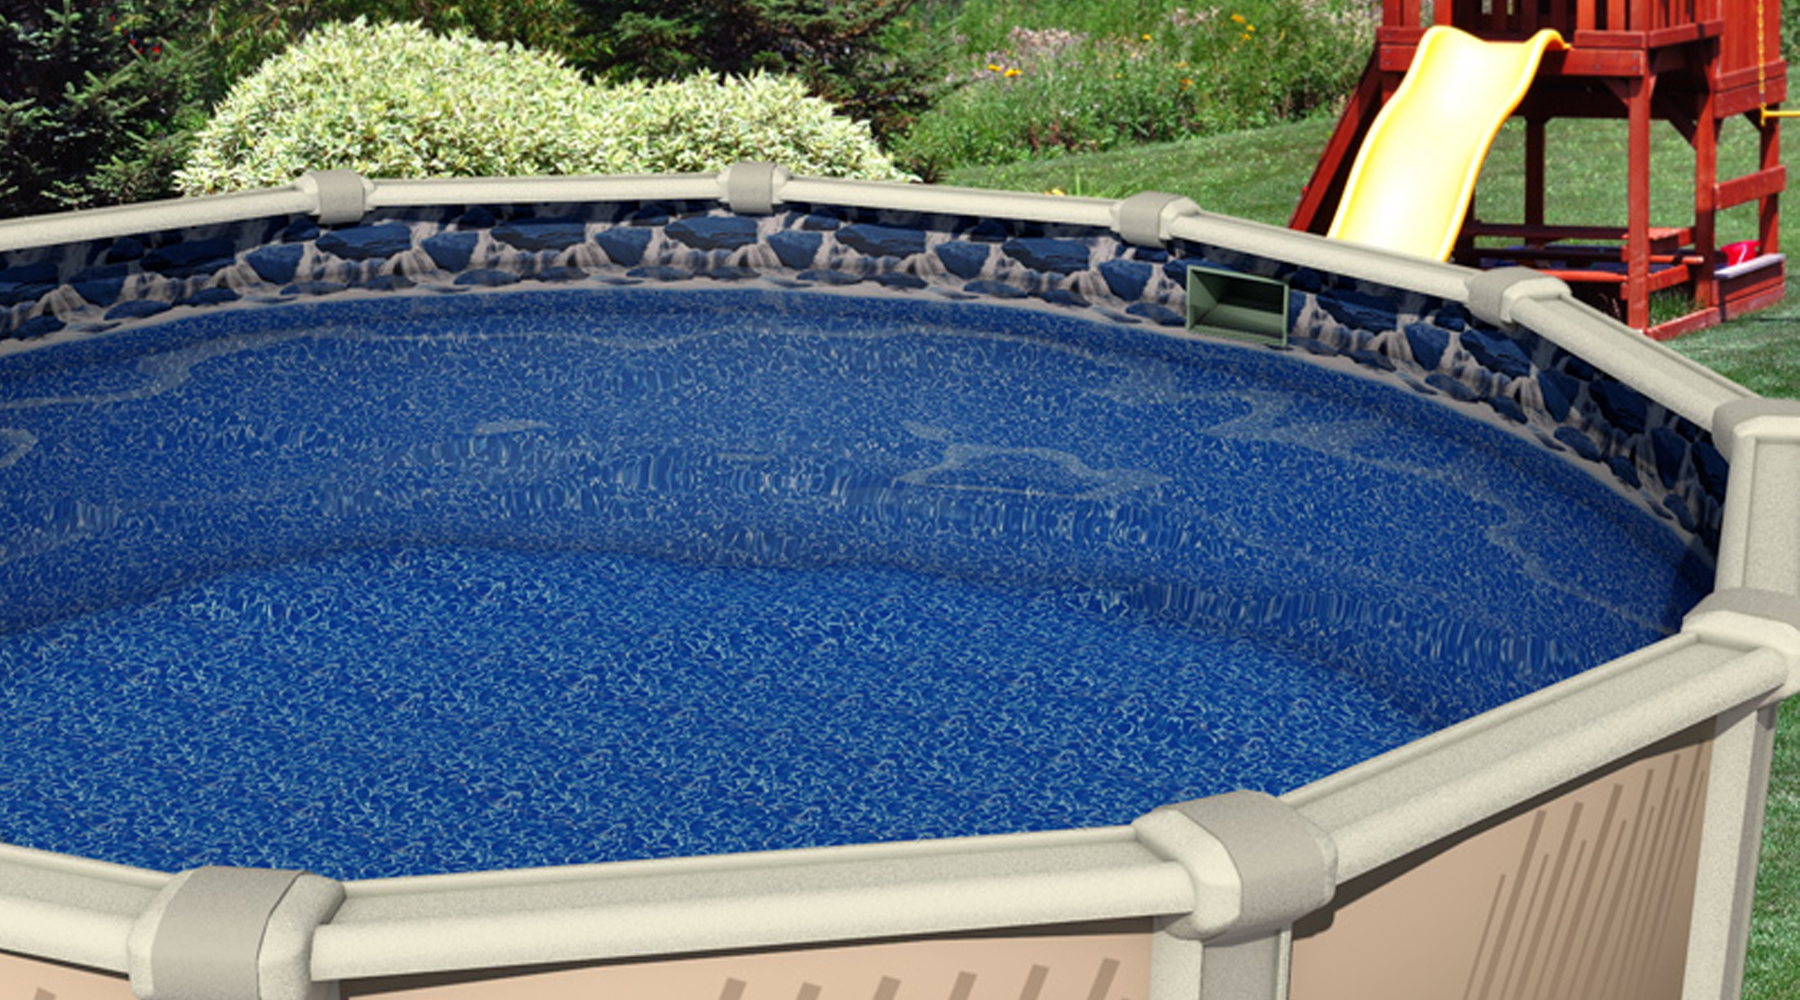 24 39 ft round overlap waterfall above ground swimming pool for Top of the line above ground pools